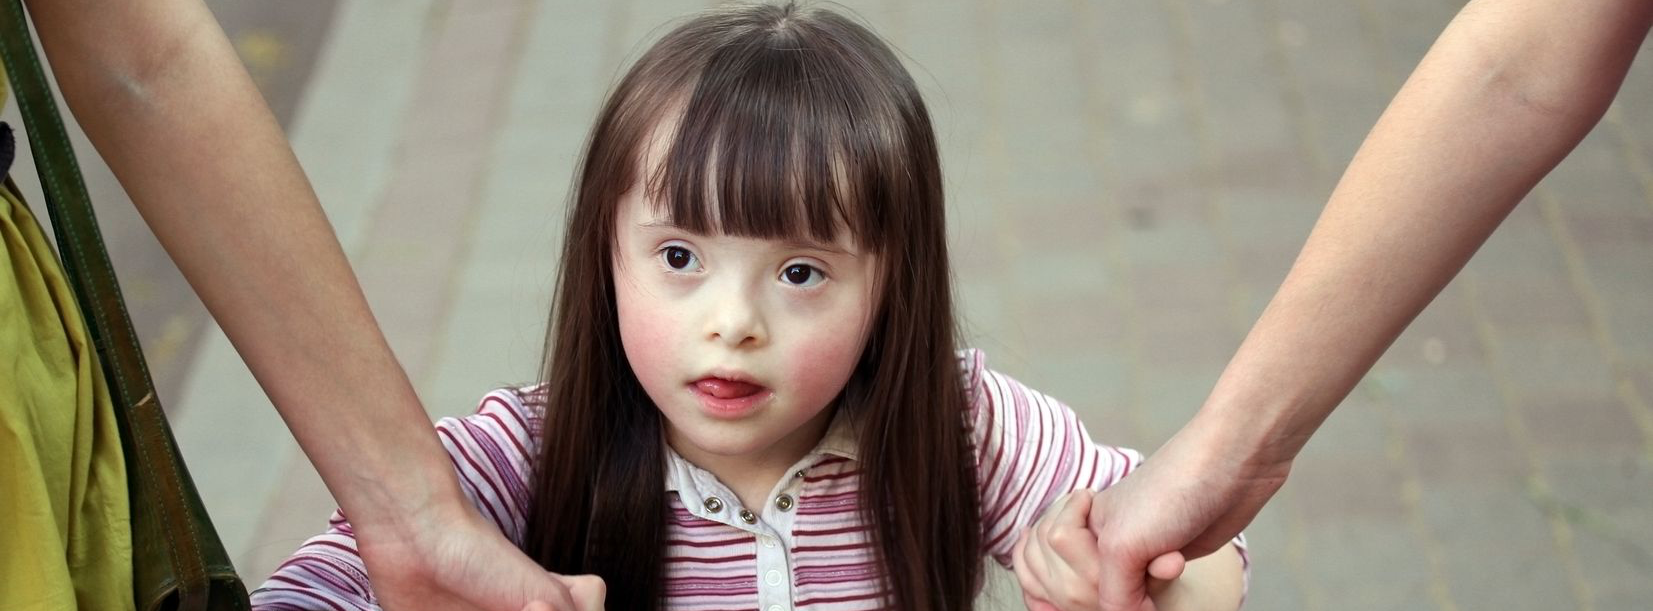 In-Home-Care_for_Children_with_Disabilities.png